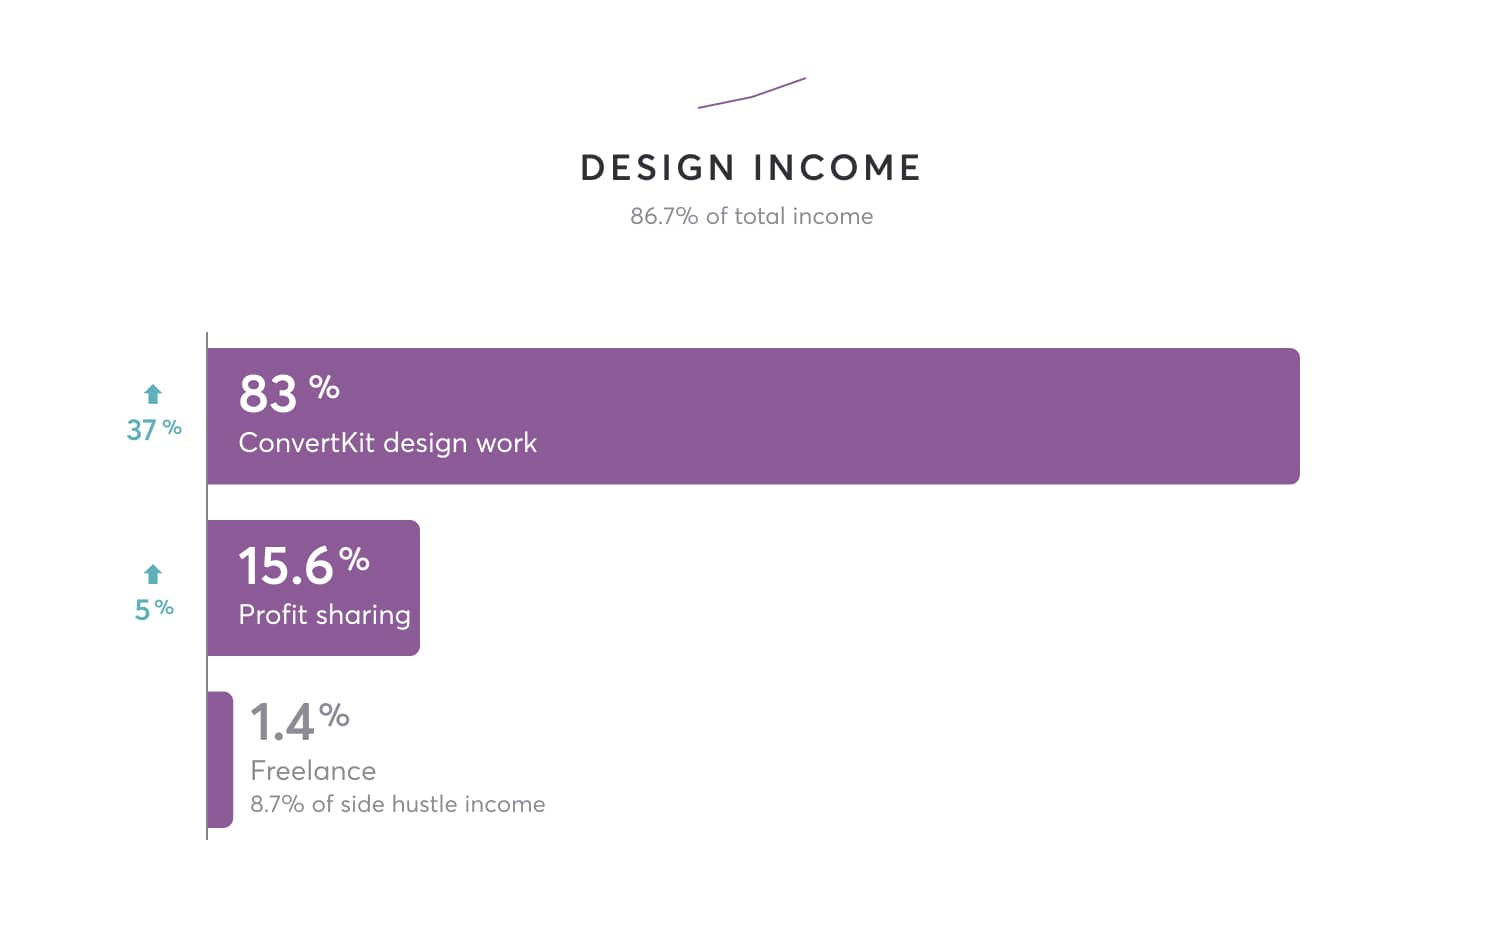 83% ConvertKit design work, 15.6% profit sharing, 1.4% freelance